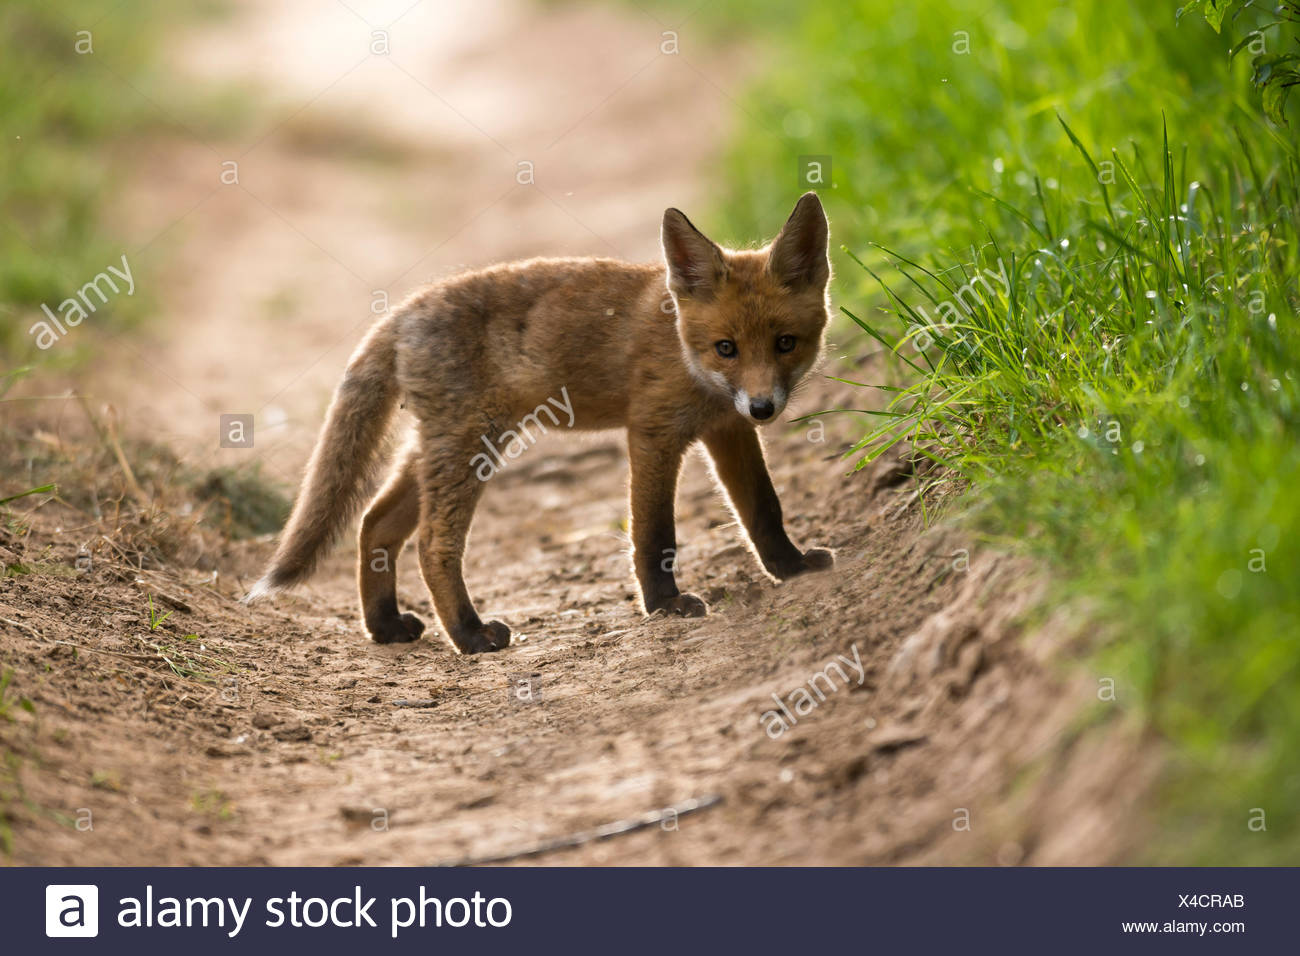 Young red fox (Vulpes vulpes) on path, Young Animal, Puppy, Baden-Württemberg, Germany - Stock Image